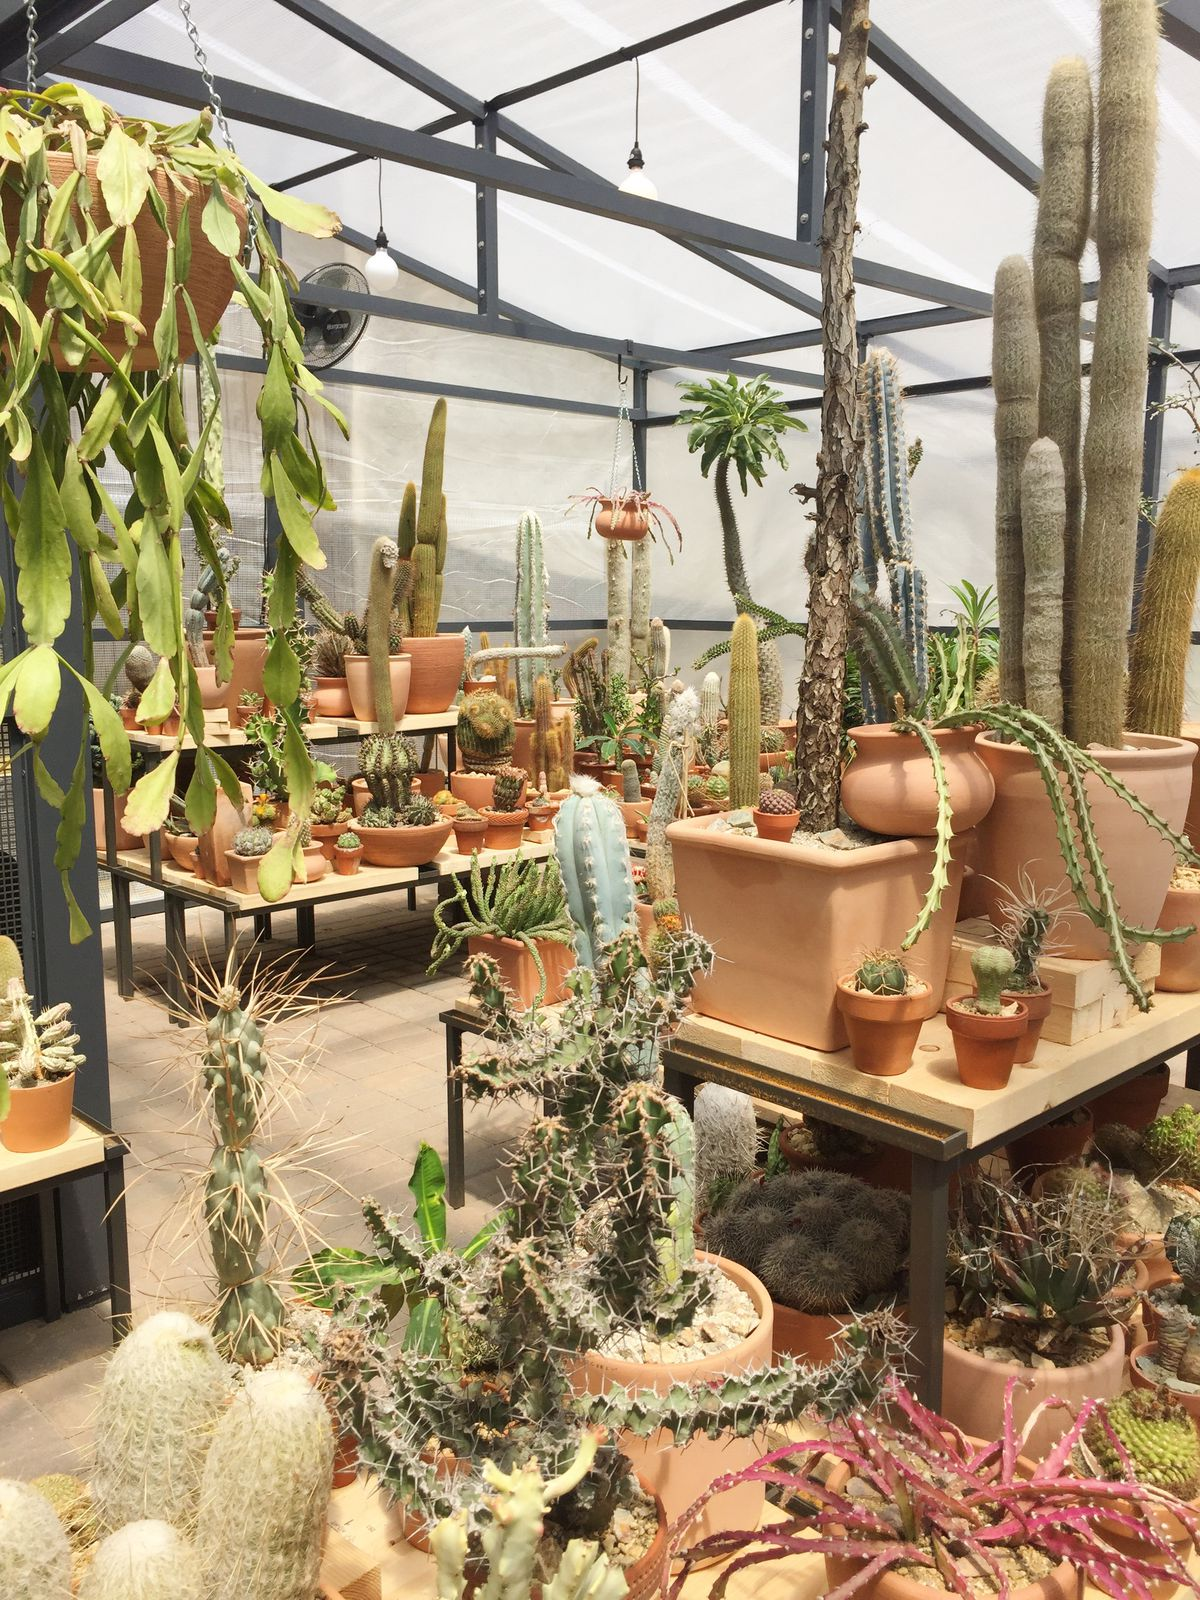 NYC\'s coolest new pop-up shop is a greenhouse with 1,000 cacti - Curbed